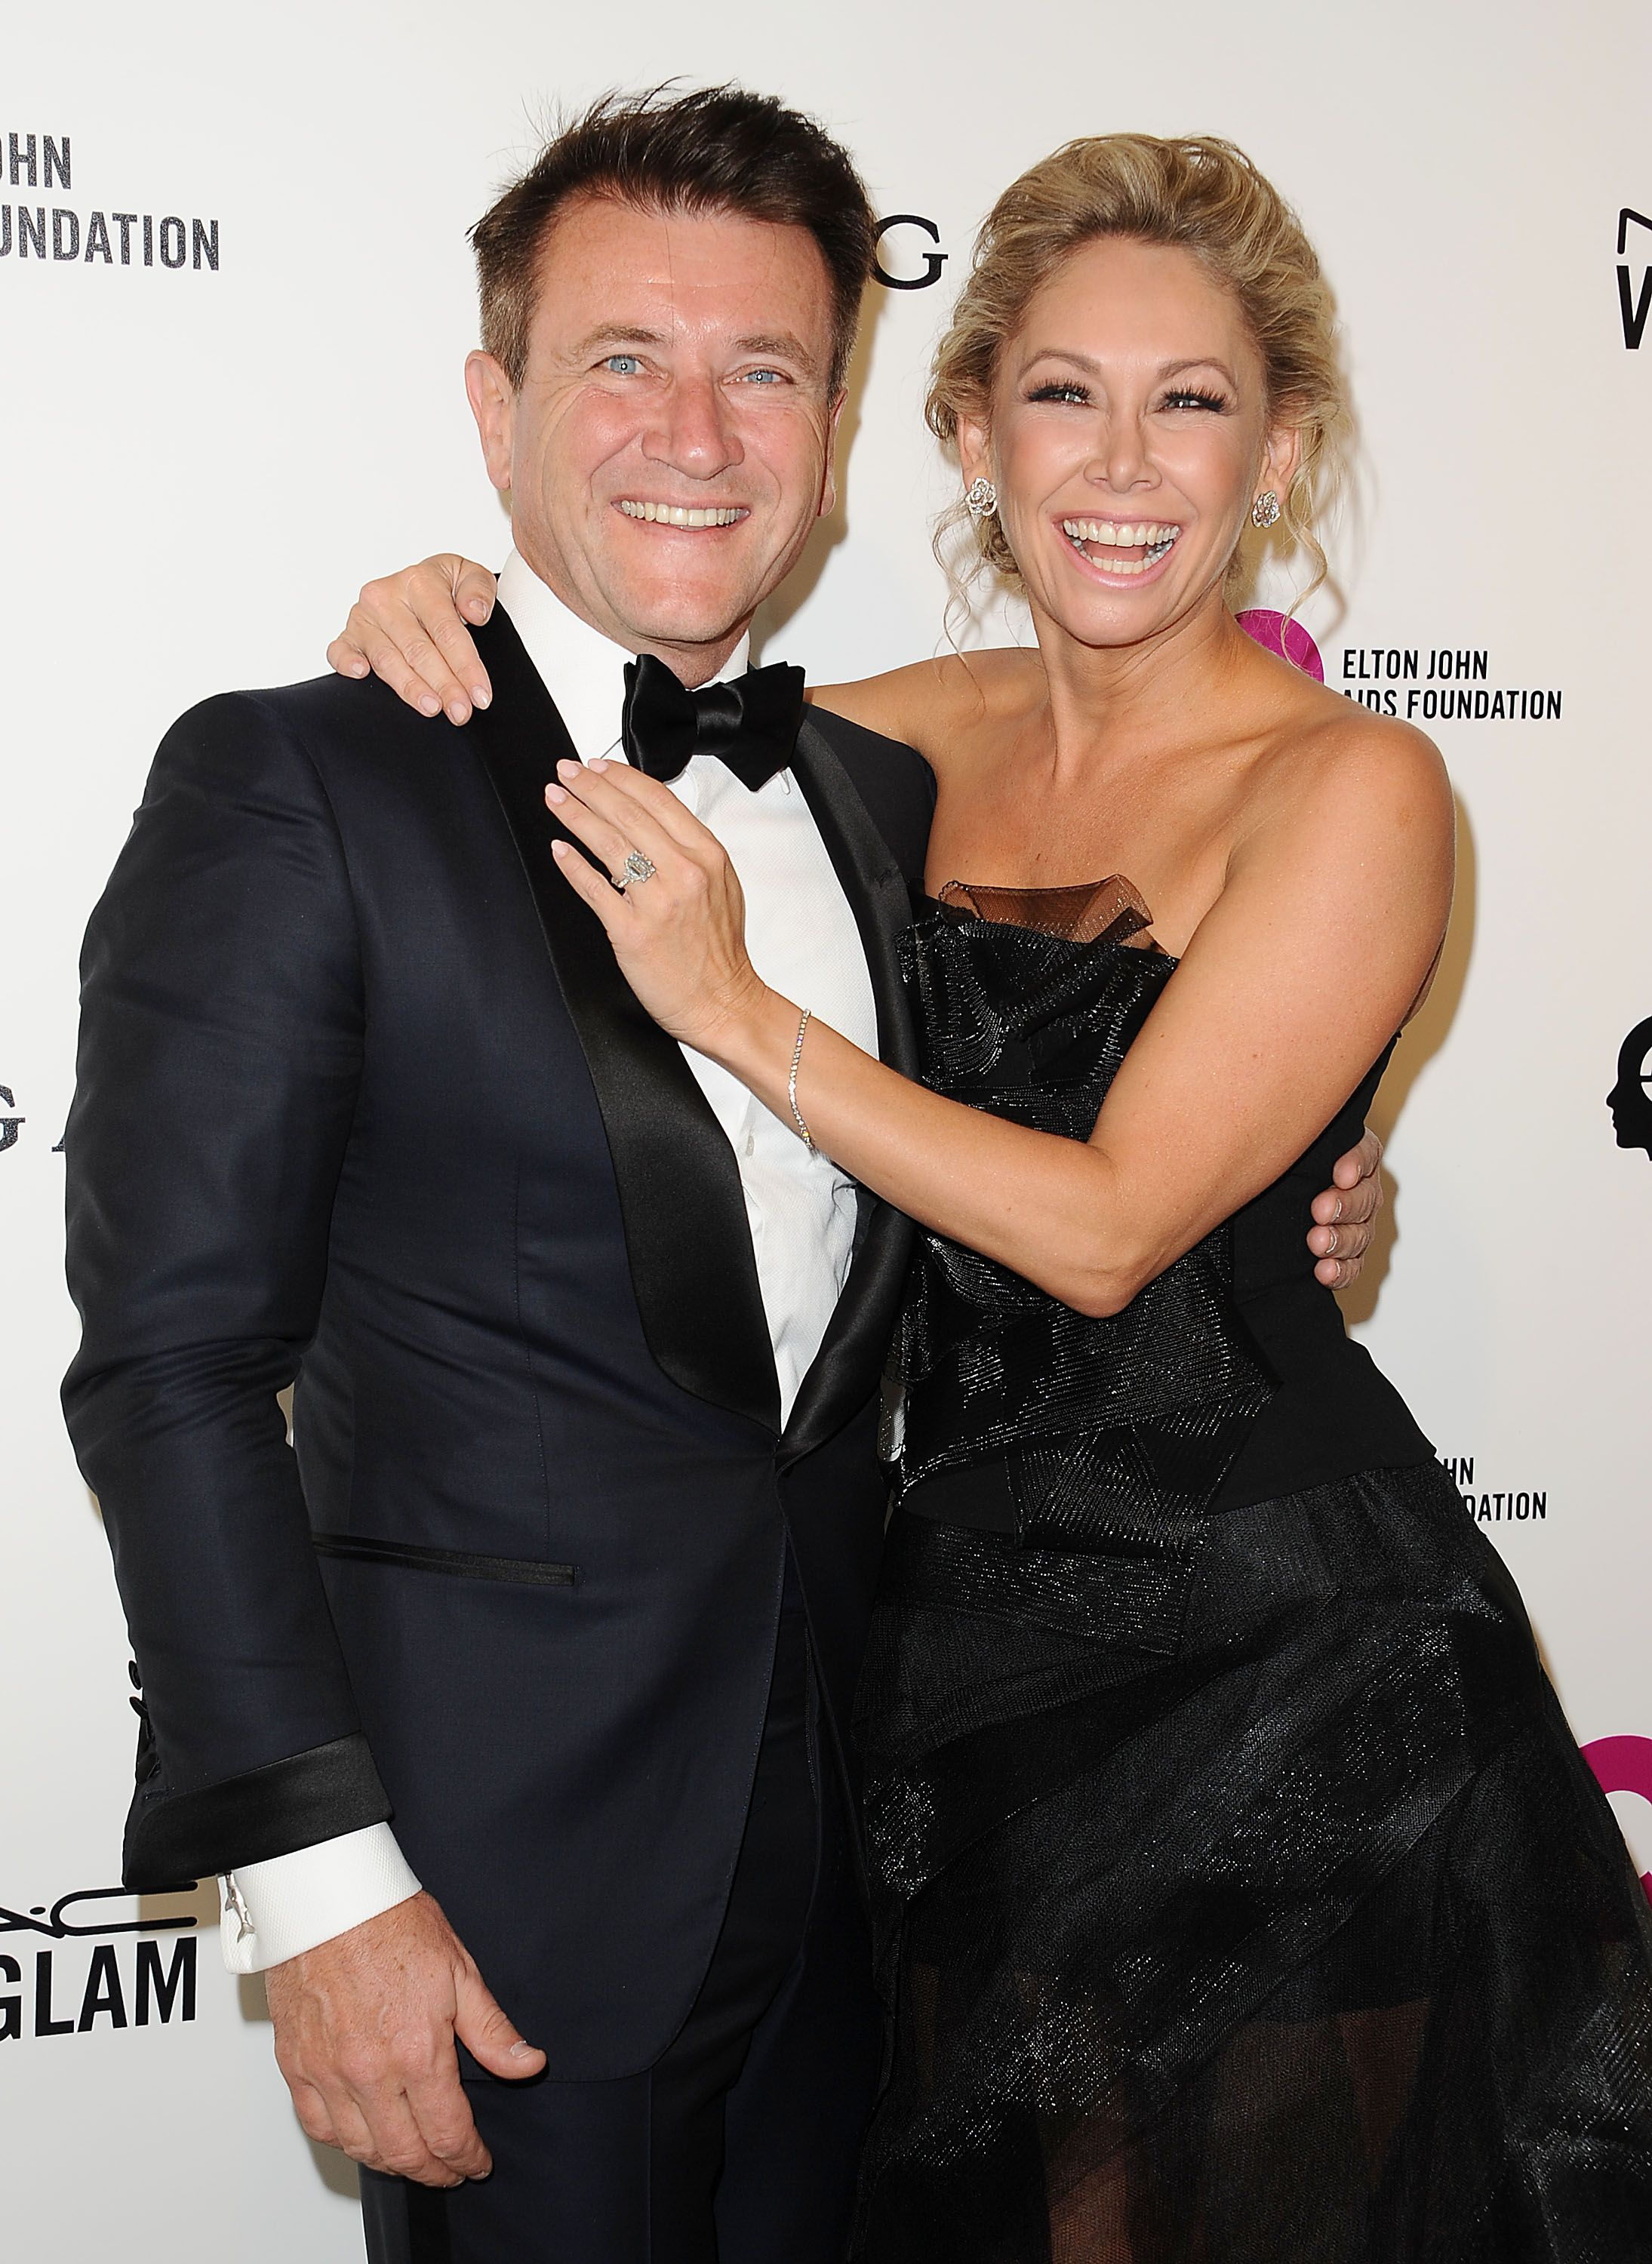 Robert Herjavec and Kym Johnson at the 24th annual Elton John AIDS Foundation's Oscar viewing party in 2016 in West Hollywood | Source: Getty Images